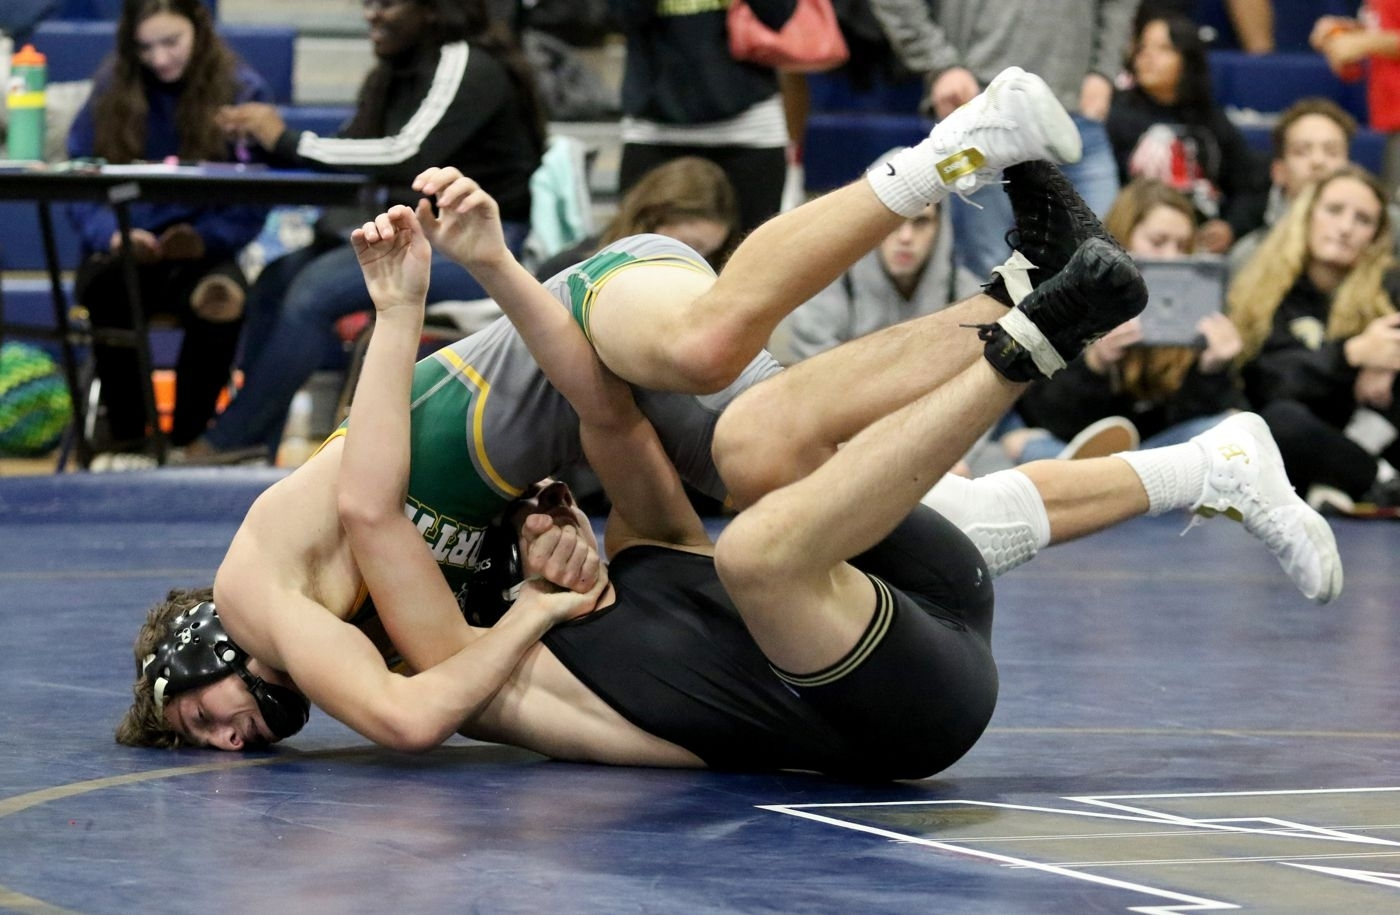 The Top 15 Regional Wrestlers Of The Class Of 2021